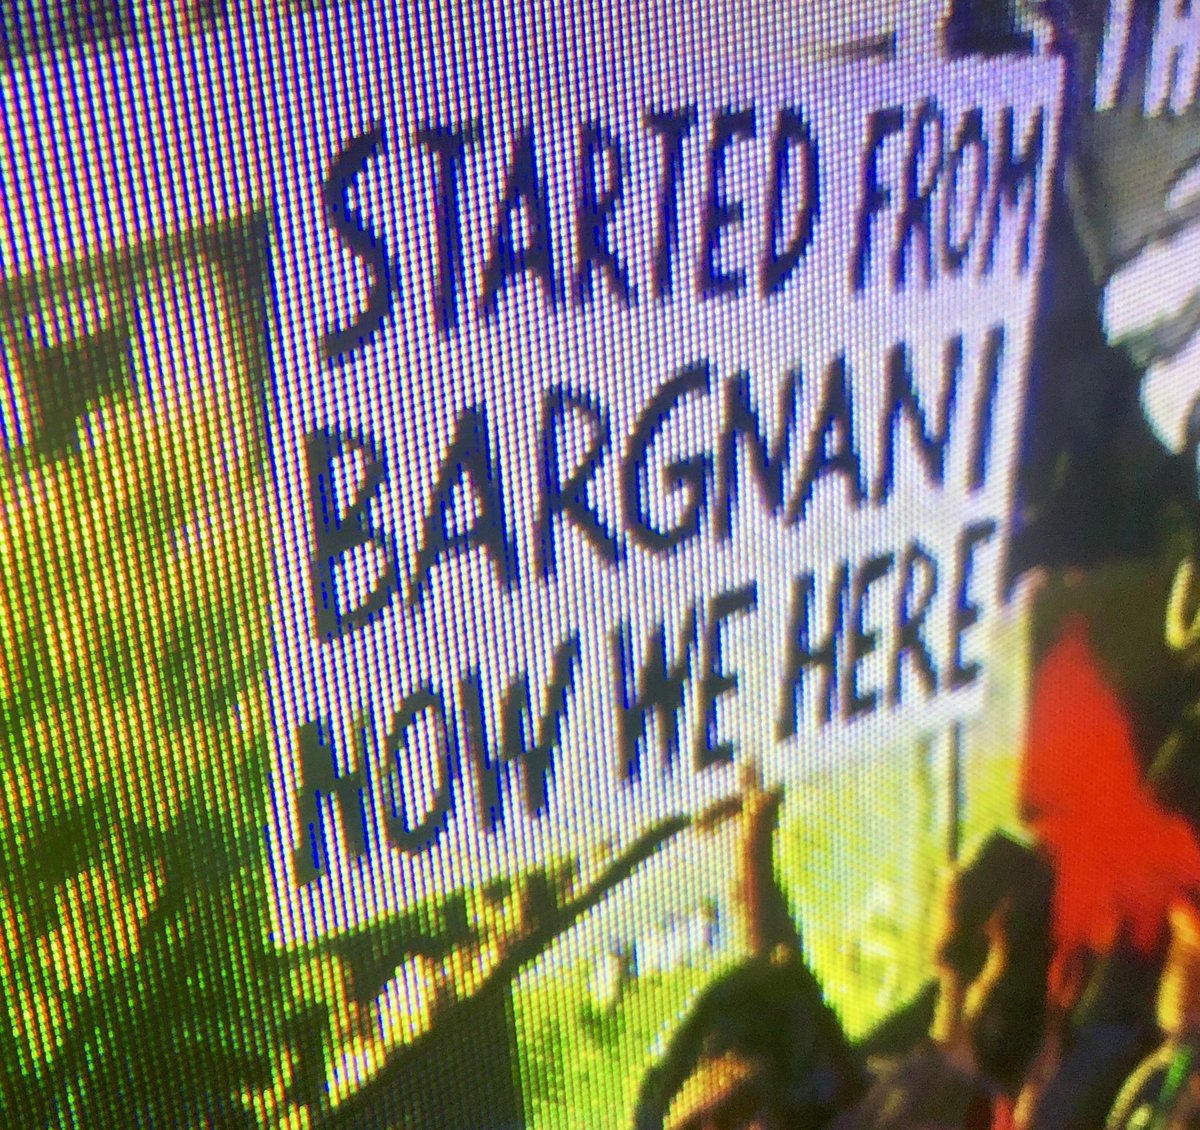 This is might be the greatest #WeTheNorth @Raptors parade sign you'll see today